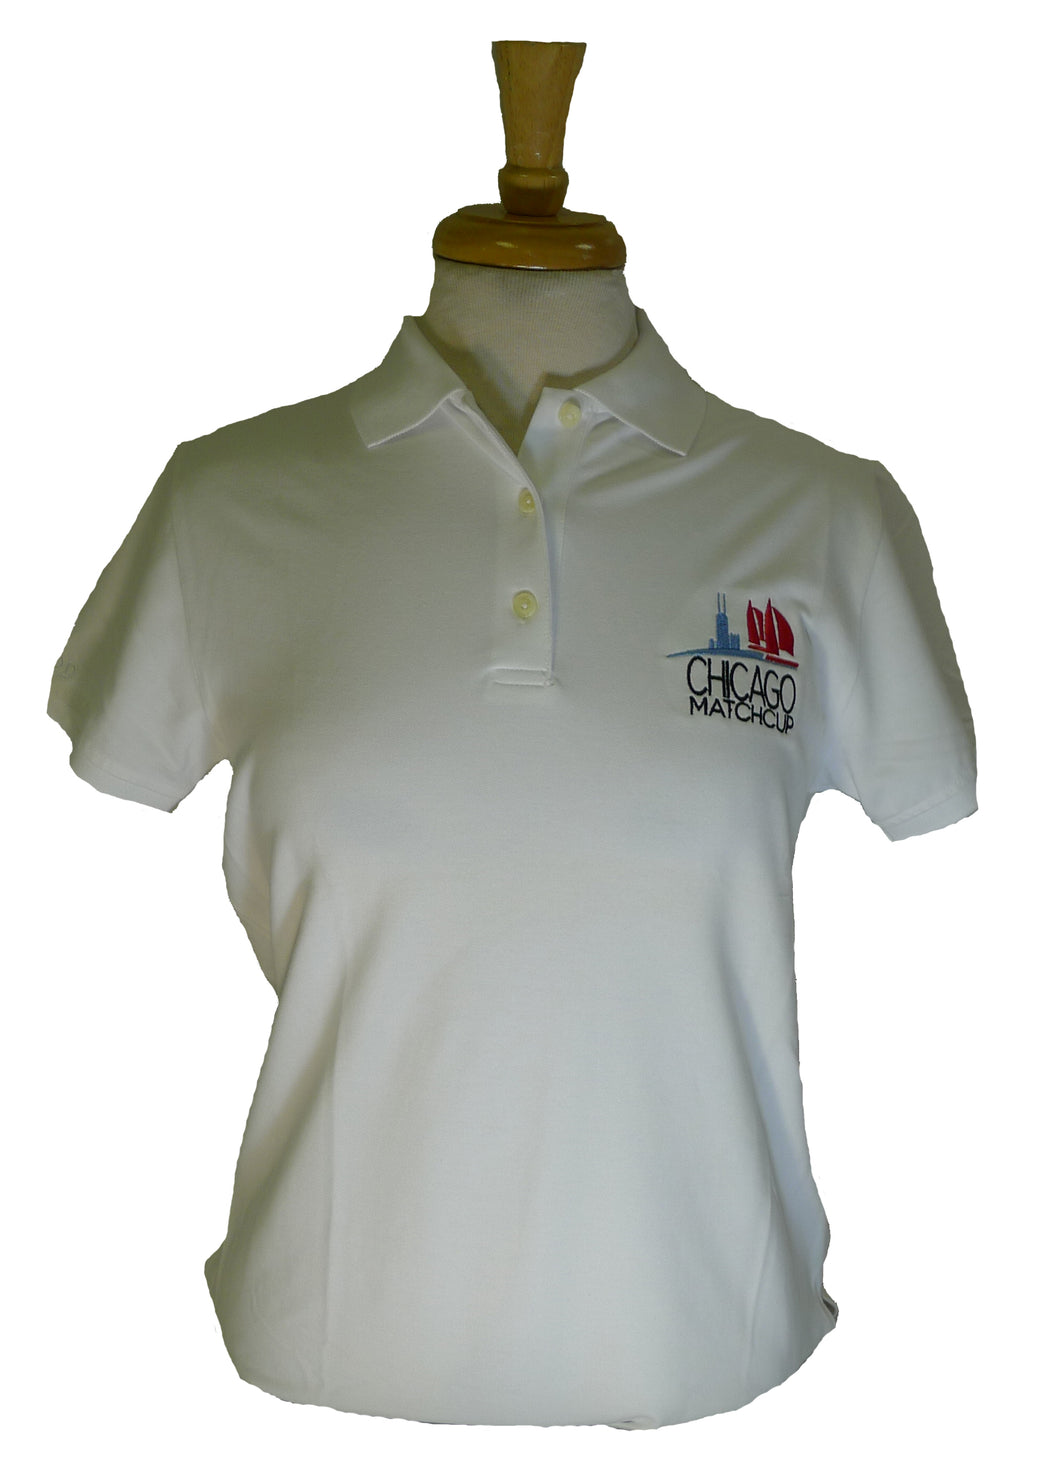 IZOD Matchcup Performx Polo Women's White